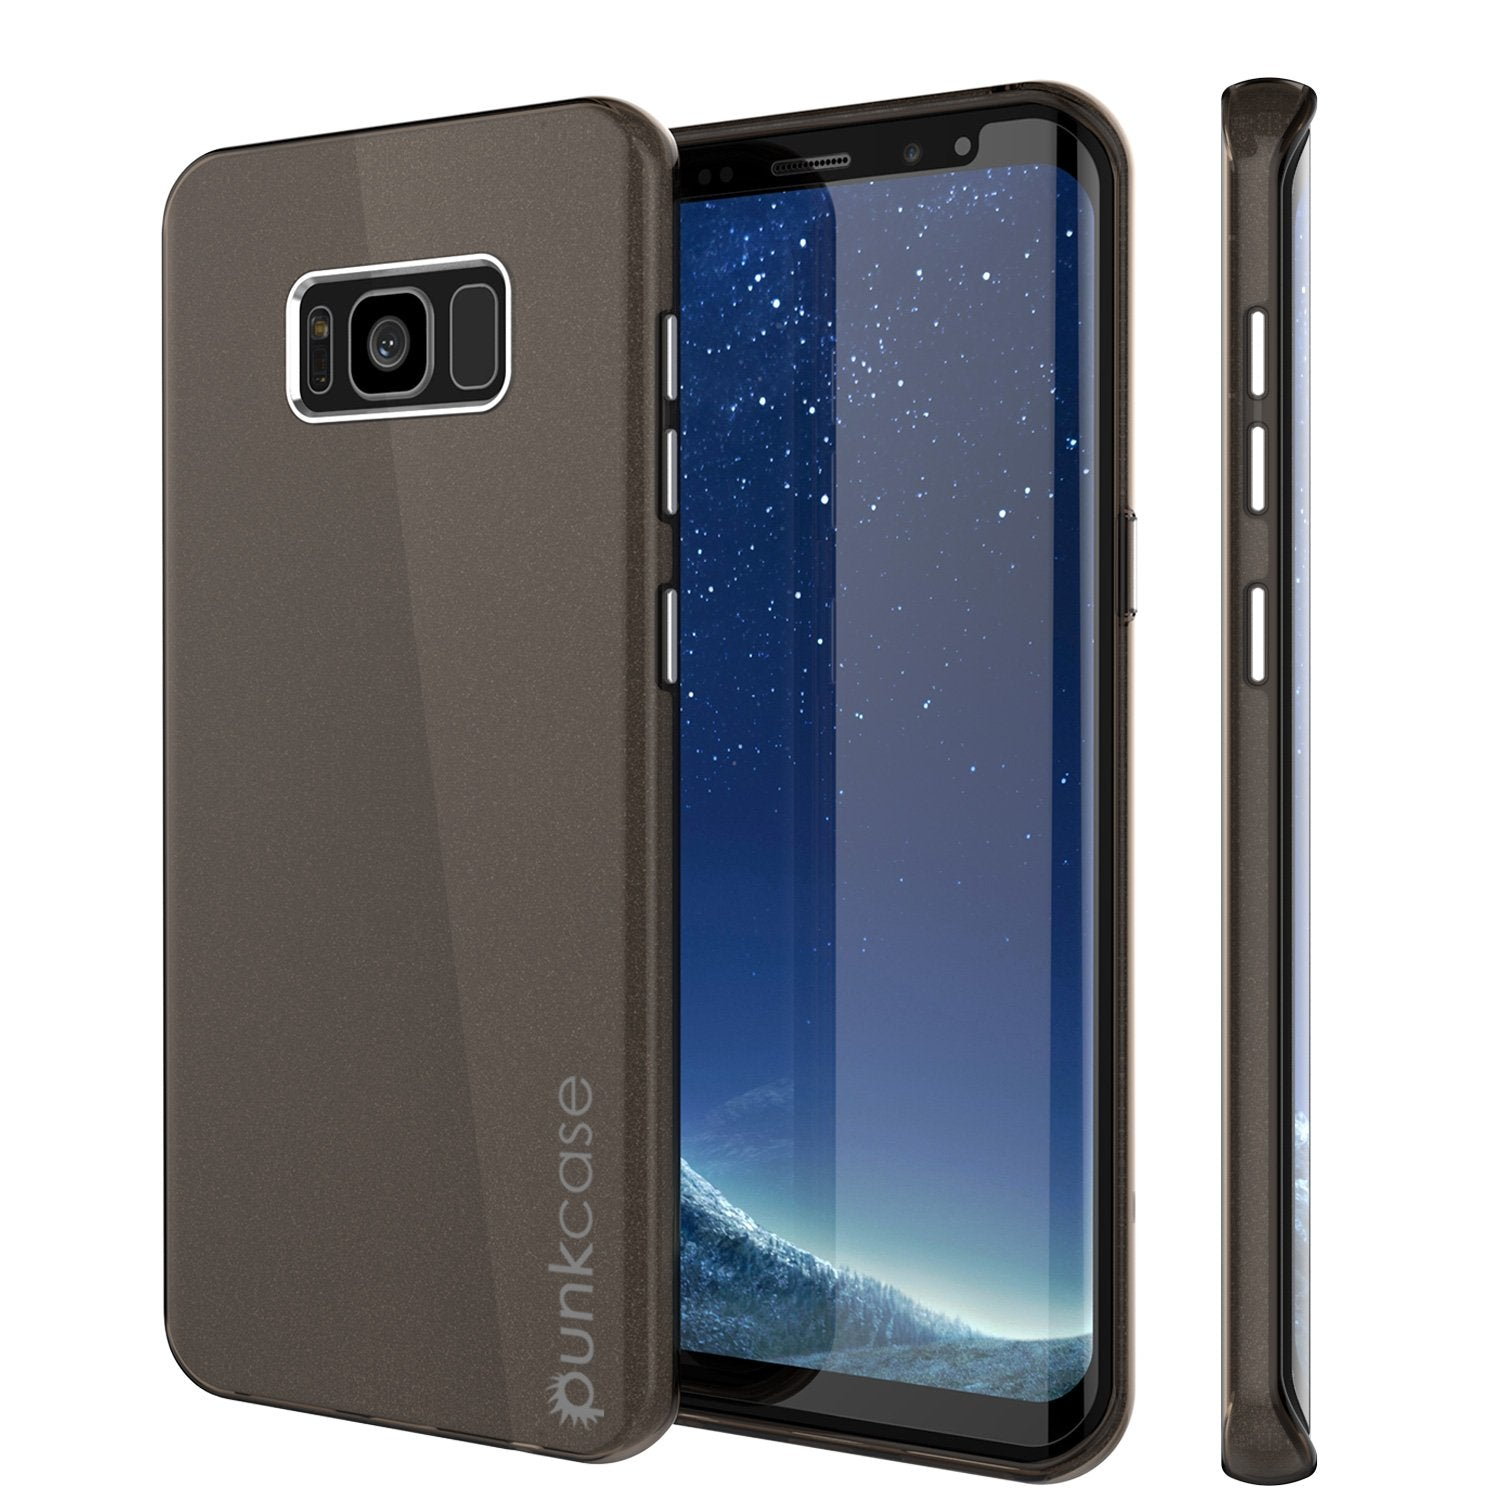 Galaxy S8 Case, Punkcase Galactic 2.0 Series Ultra Slim Protective Armor Cover [Black/grey]